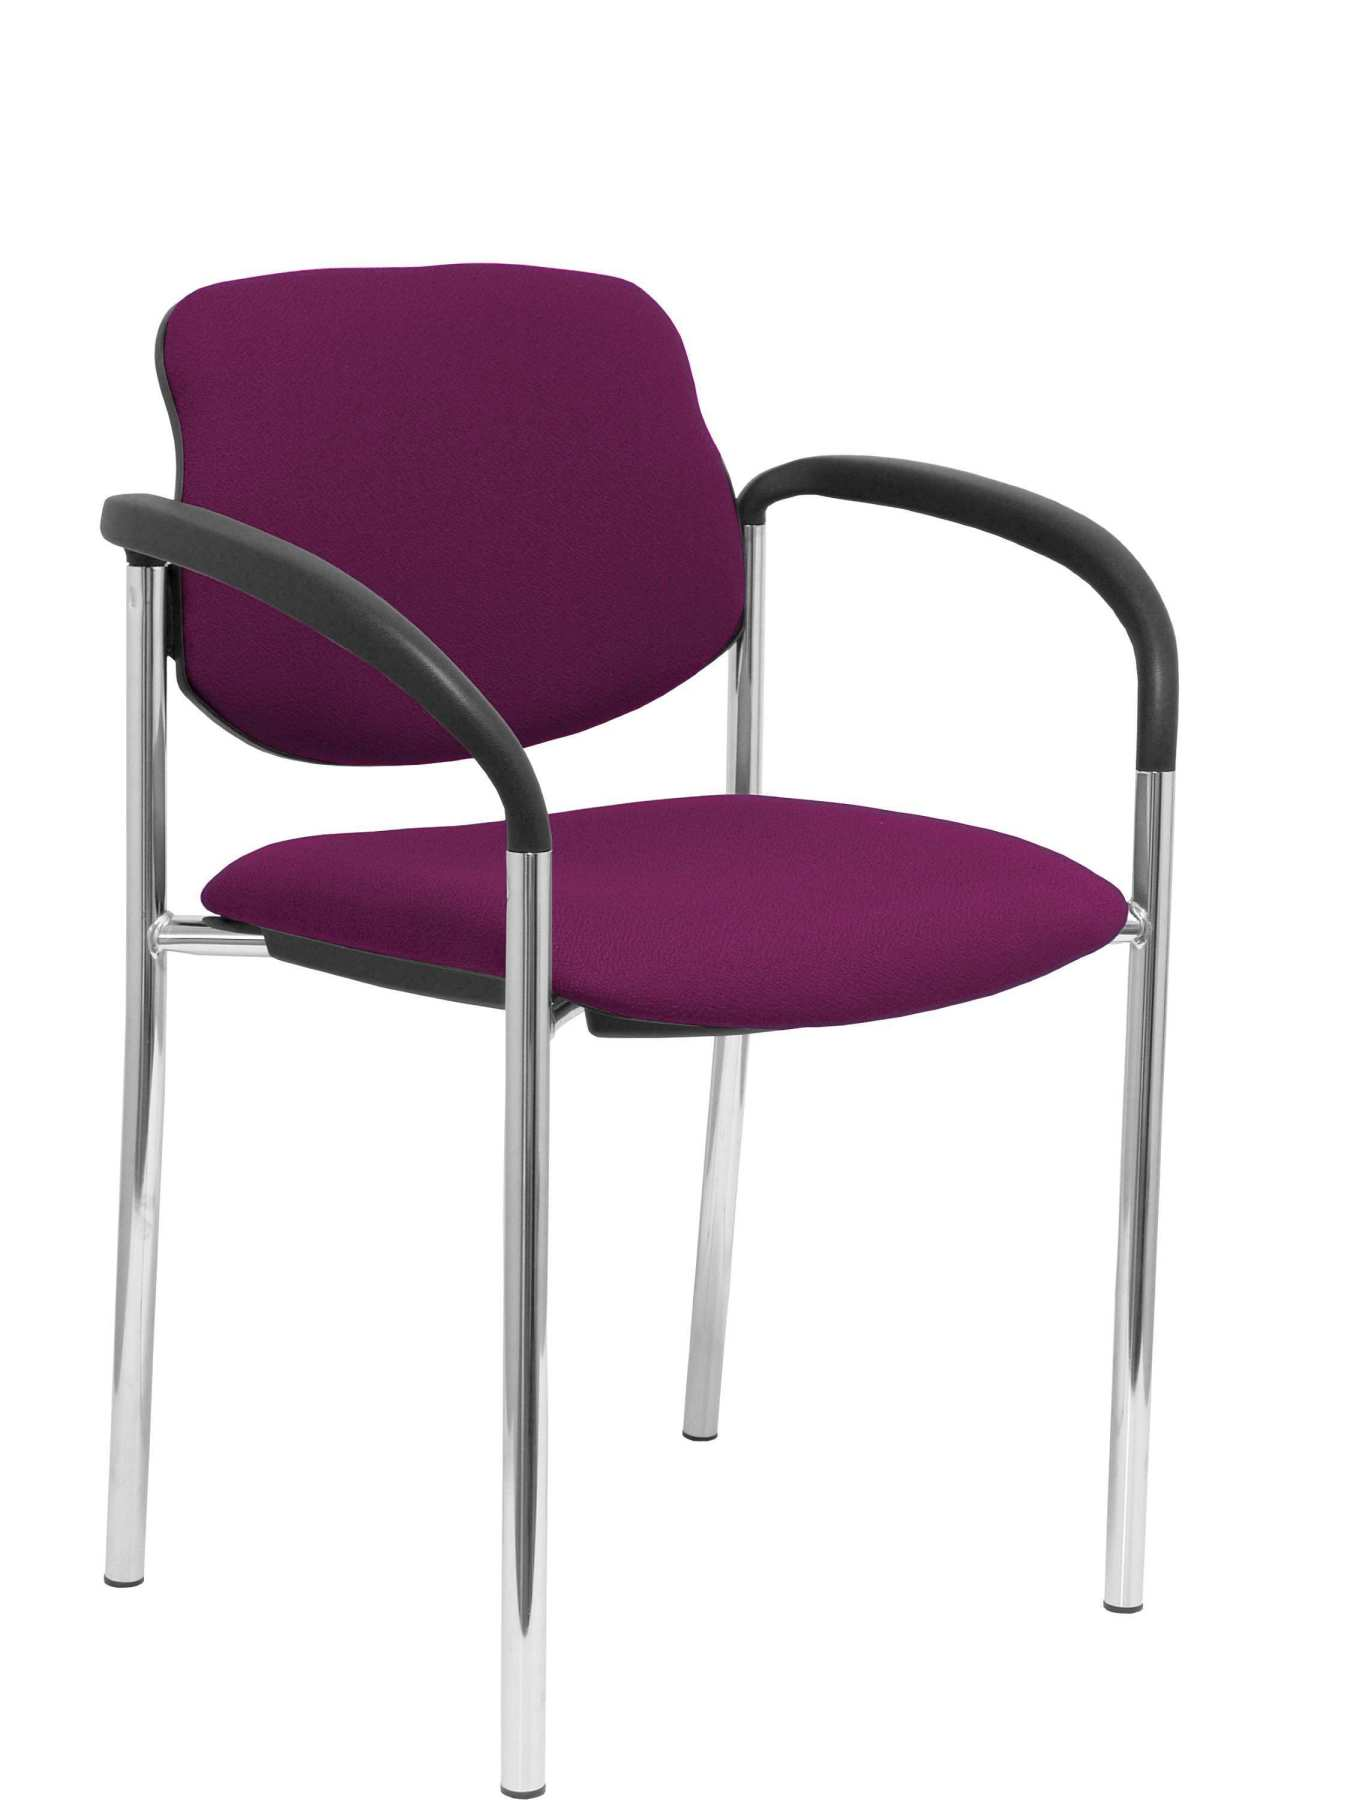 Confident Chair 4-leg And Estructrua Chrome Arms-Seat And Back Upholstered In Fabric BALI Purple P